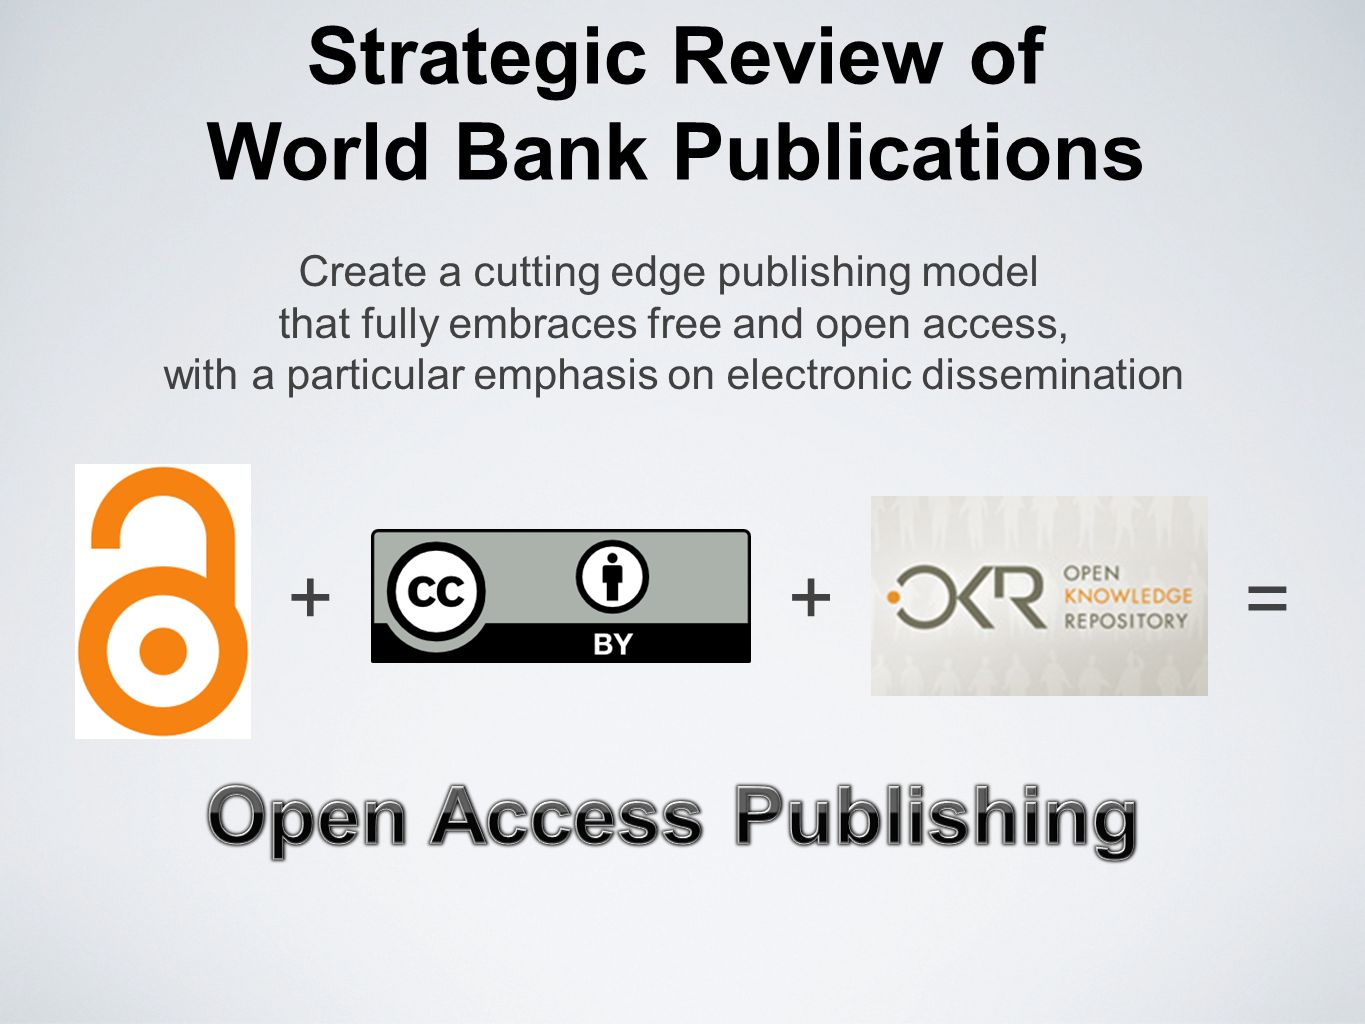 Strategic Review of World Bank Publications